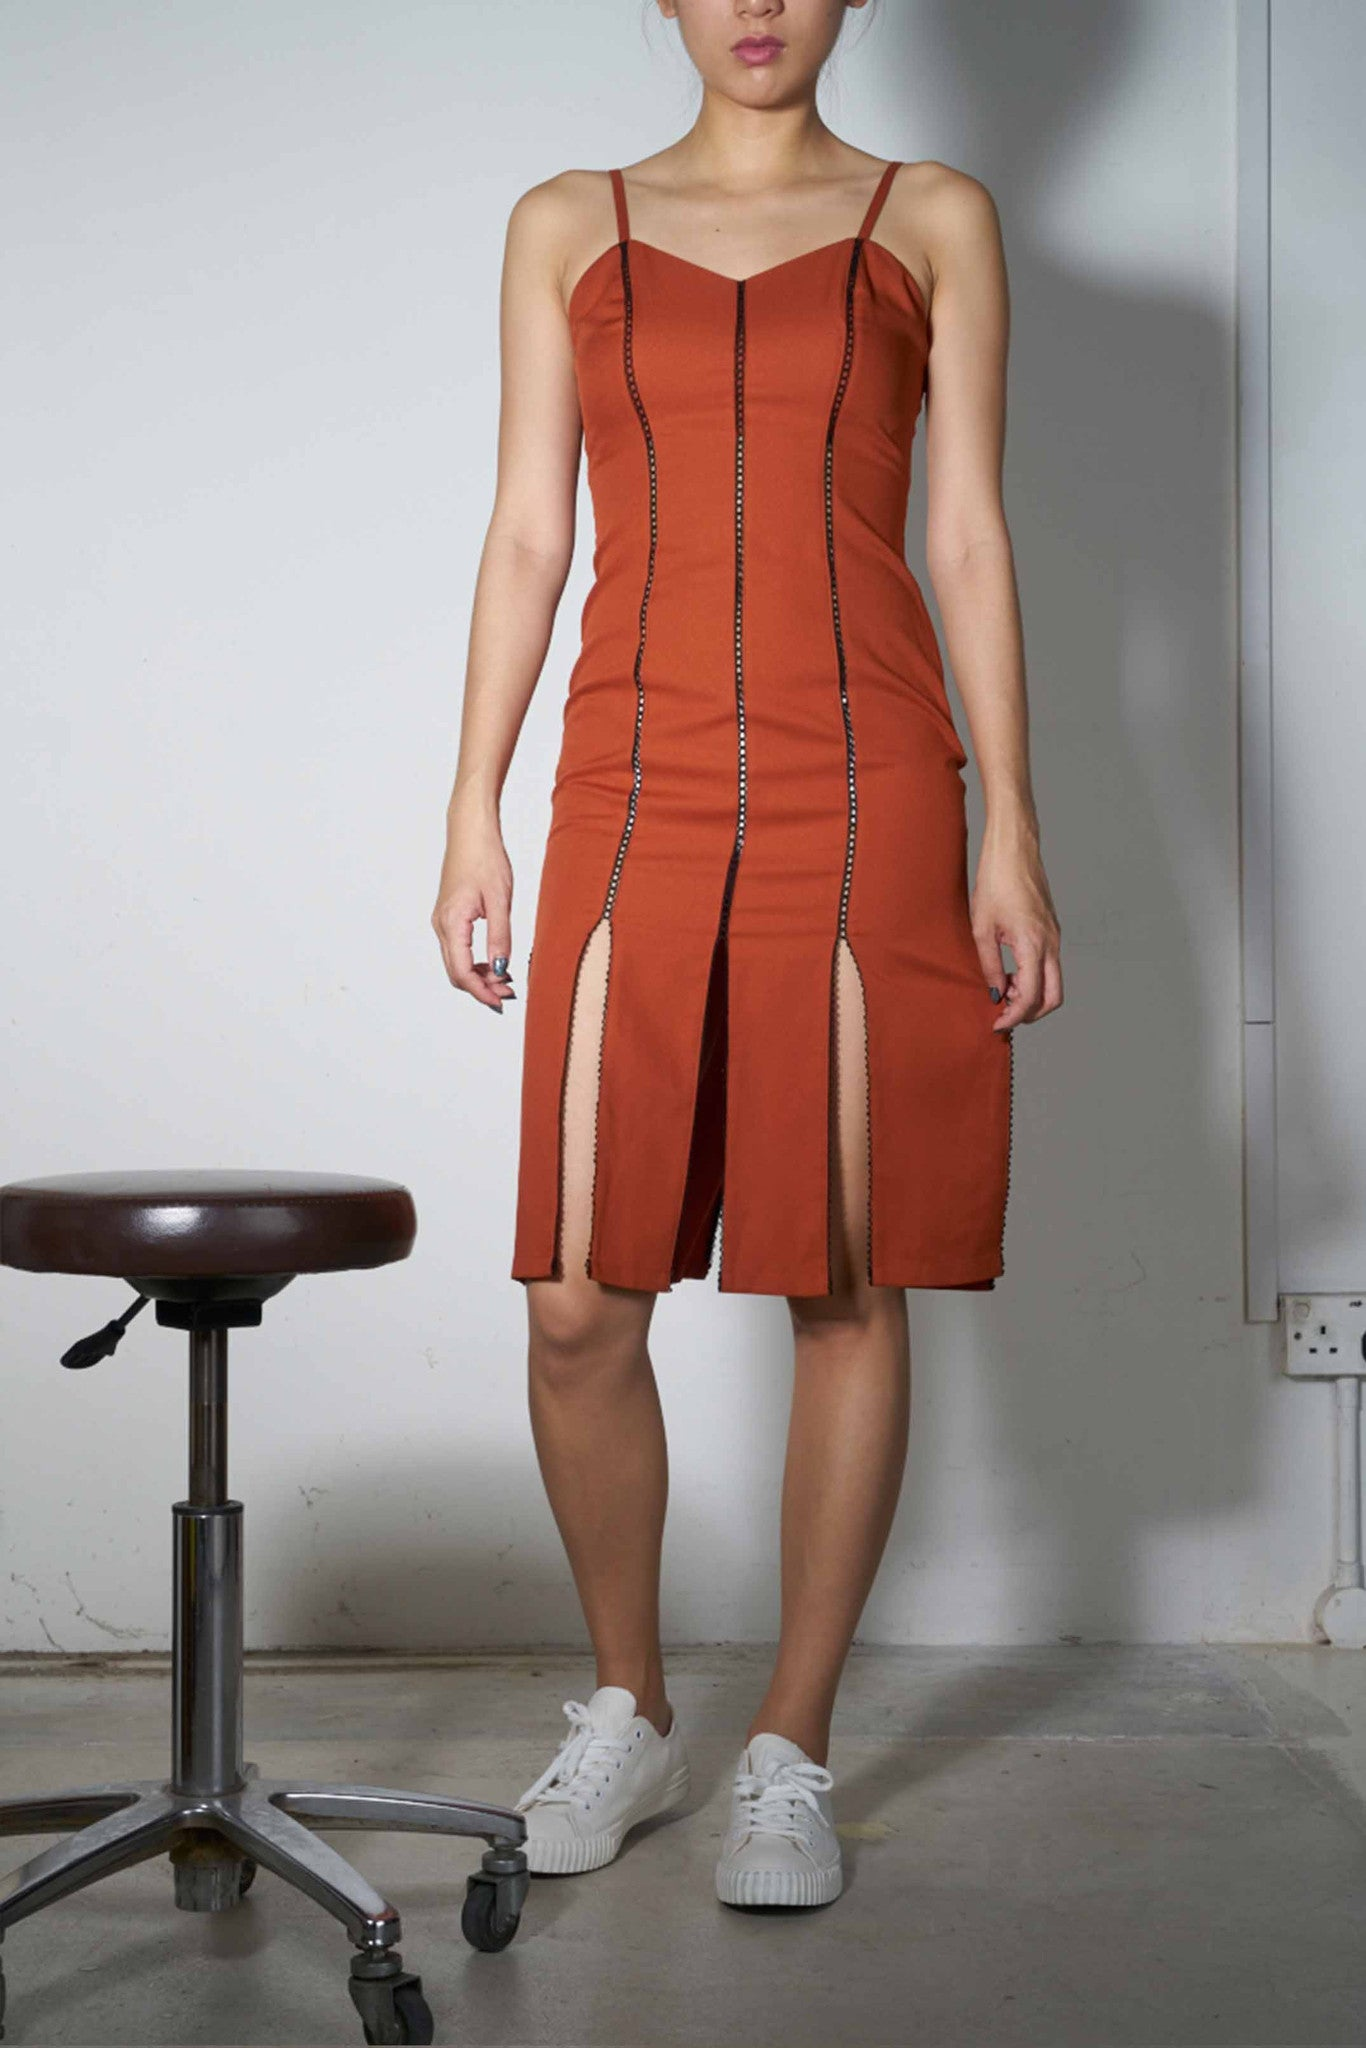 Peekapoo Peneled Slip Dress #67 - Terra Cotta